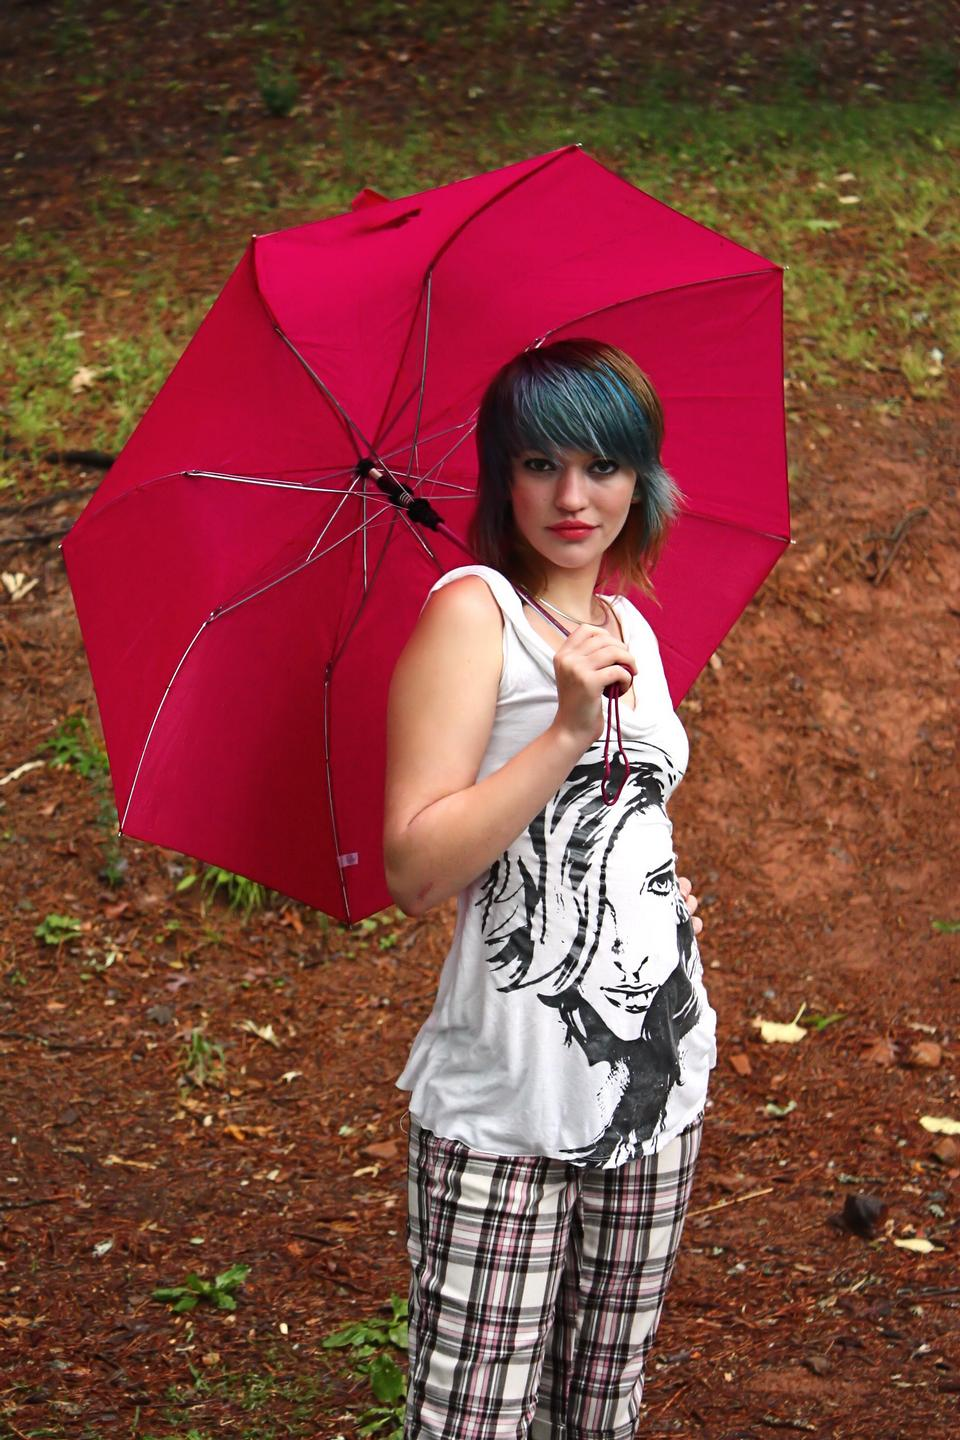 Free A Beautiful Young Woman Posing With An Umbrella